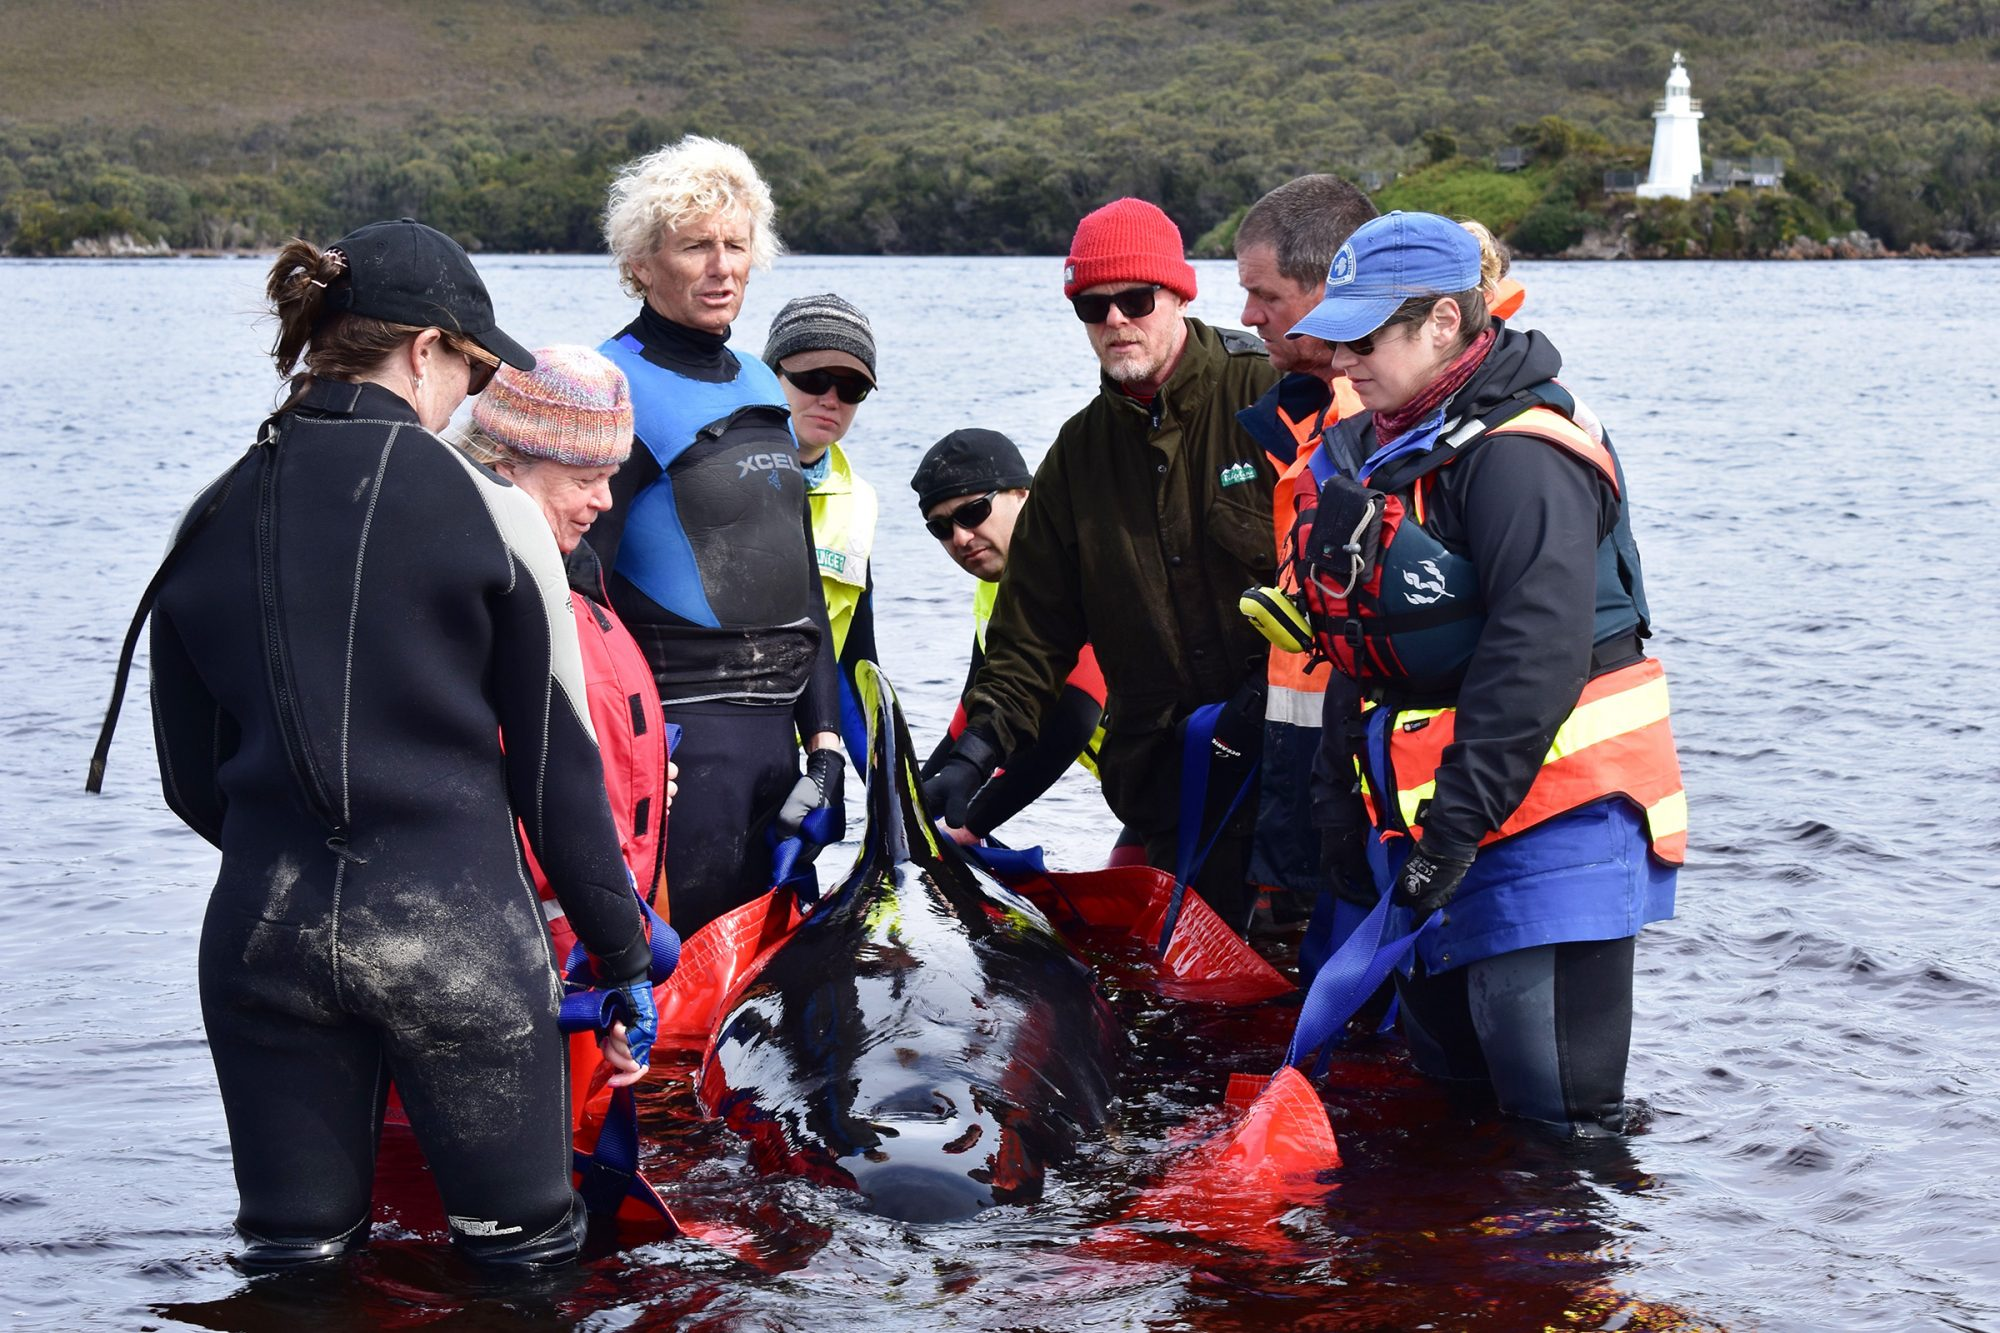 Rescuers Work To Save Hundreds Of Whales Stranded In Tasmania's Macquarie Harbour